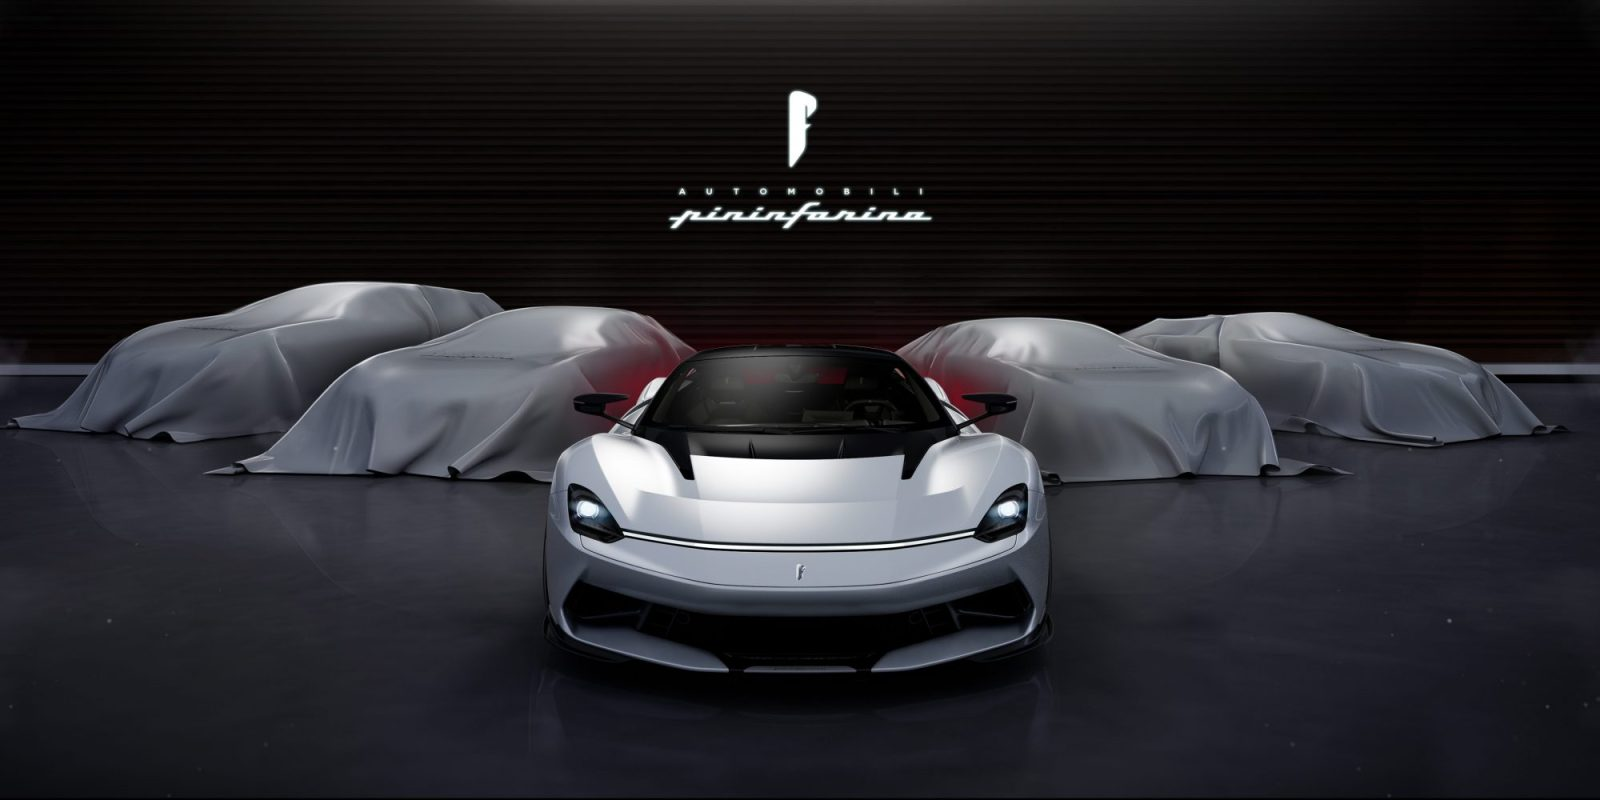 Legendary design house Pininfarina will build a full line of electric cars